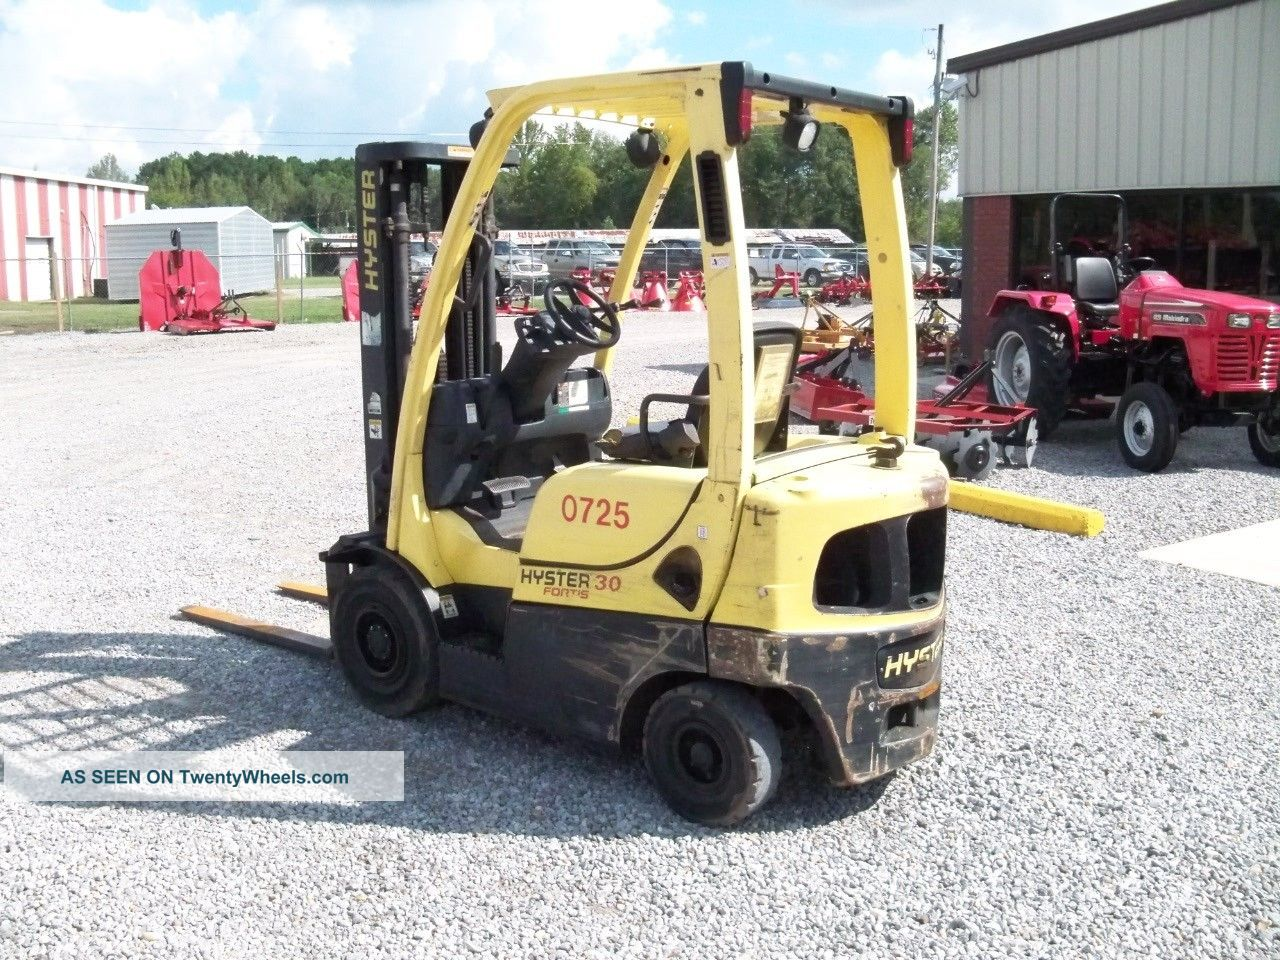 2007 hyster h30ft mast forklift tow motor 14 39 lift for Tow motor vs forklift